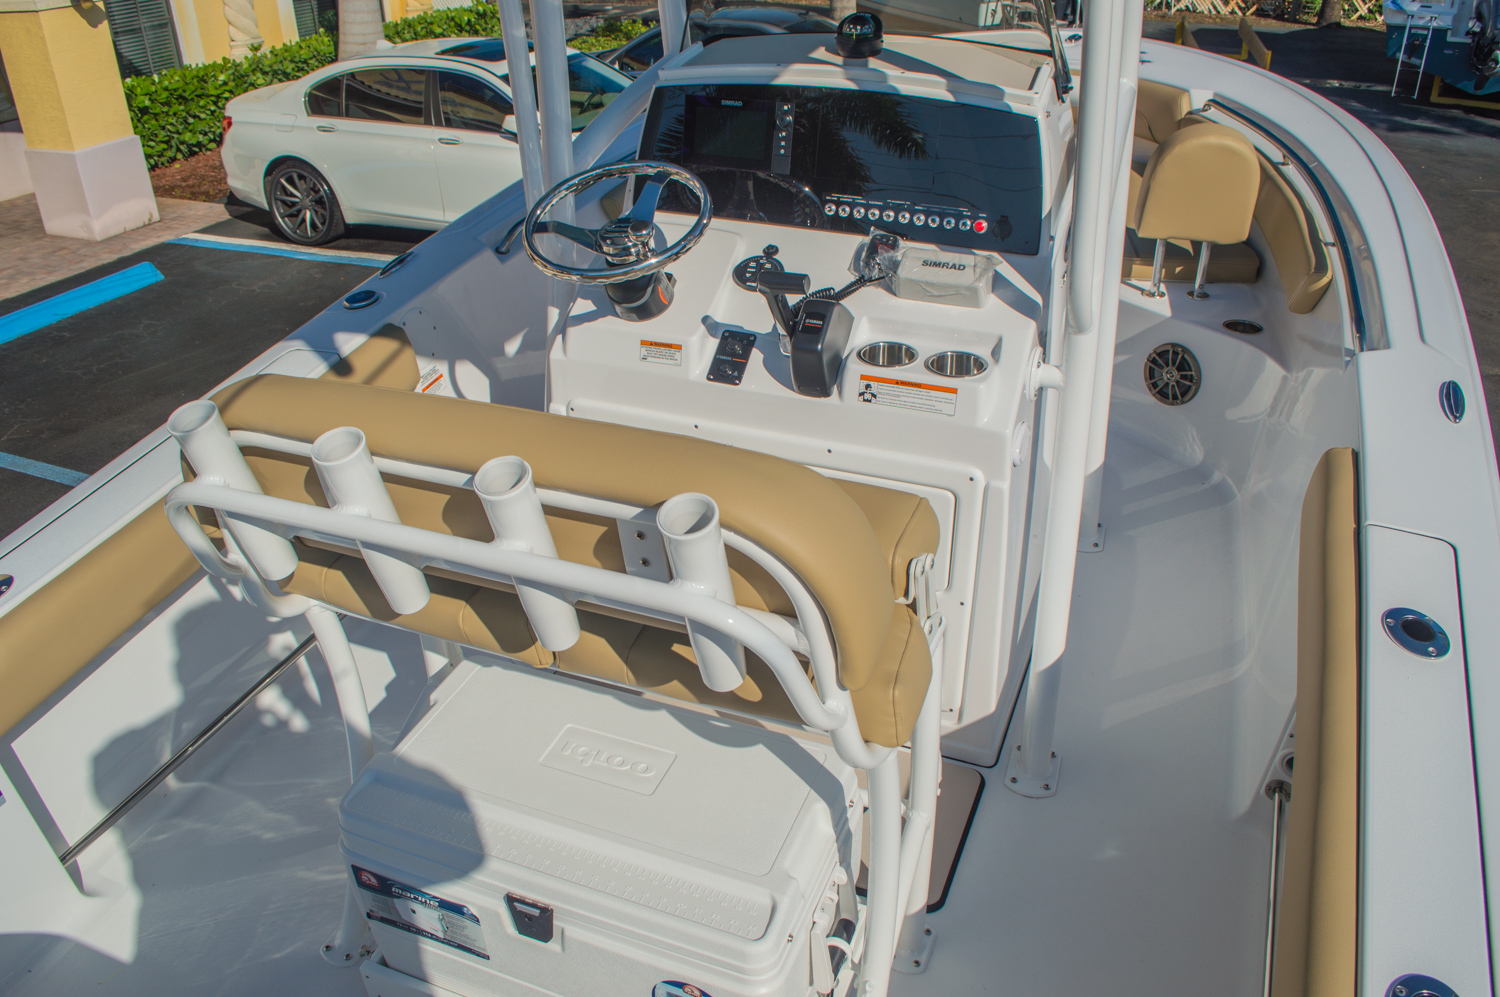 Thumbnail 18 for New 2016 Sportsman Open 212 Center Console boat for sale in West Palm Beach, FL